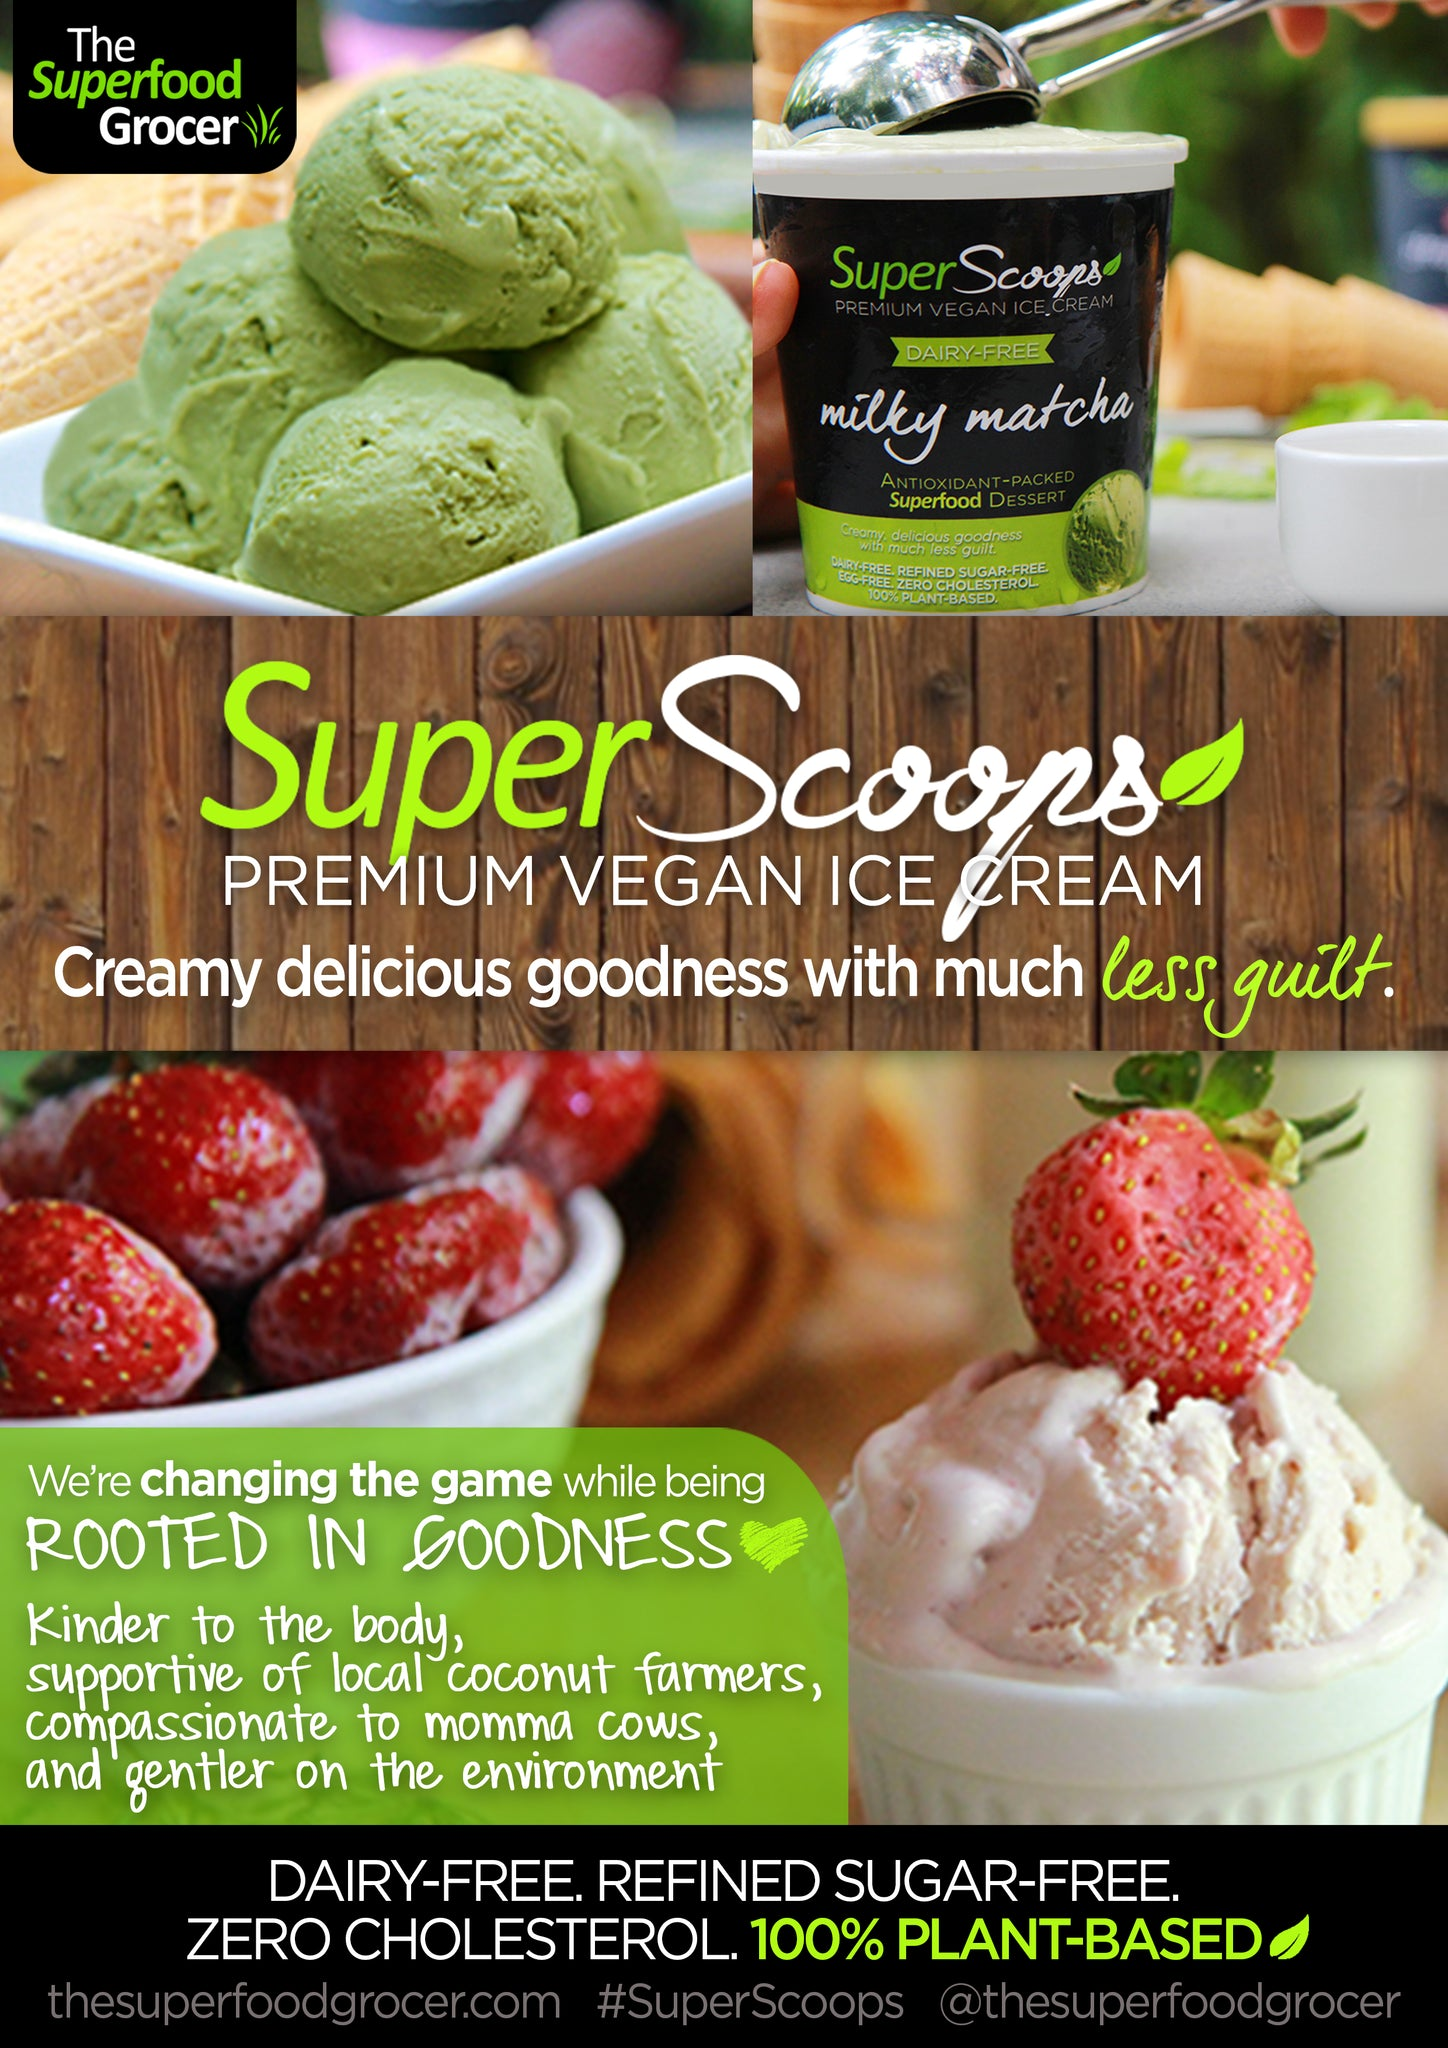 SUPER SCOOPS Premium Vegan Dairy-Free Ice Cream Philippines | The Superfood Grocer